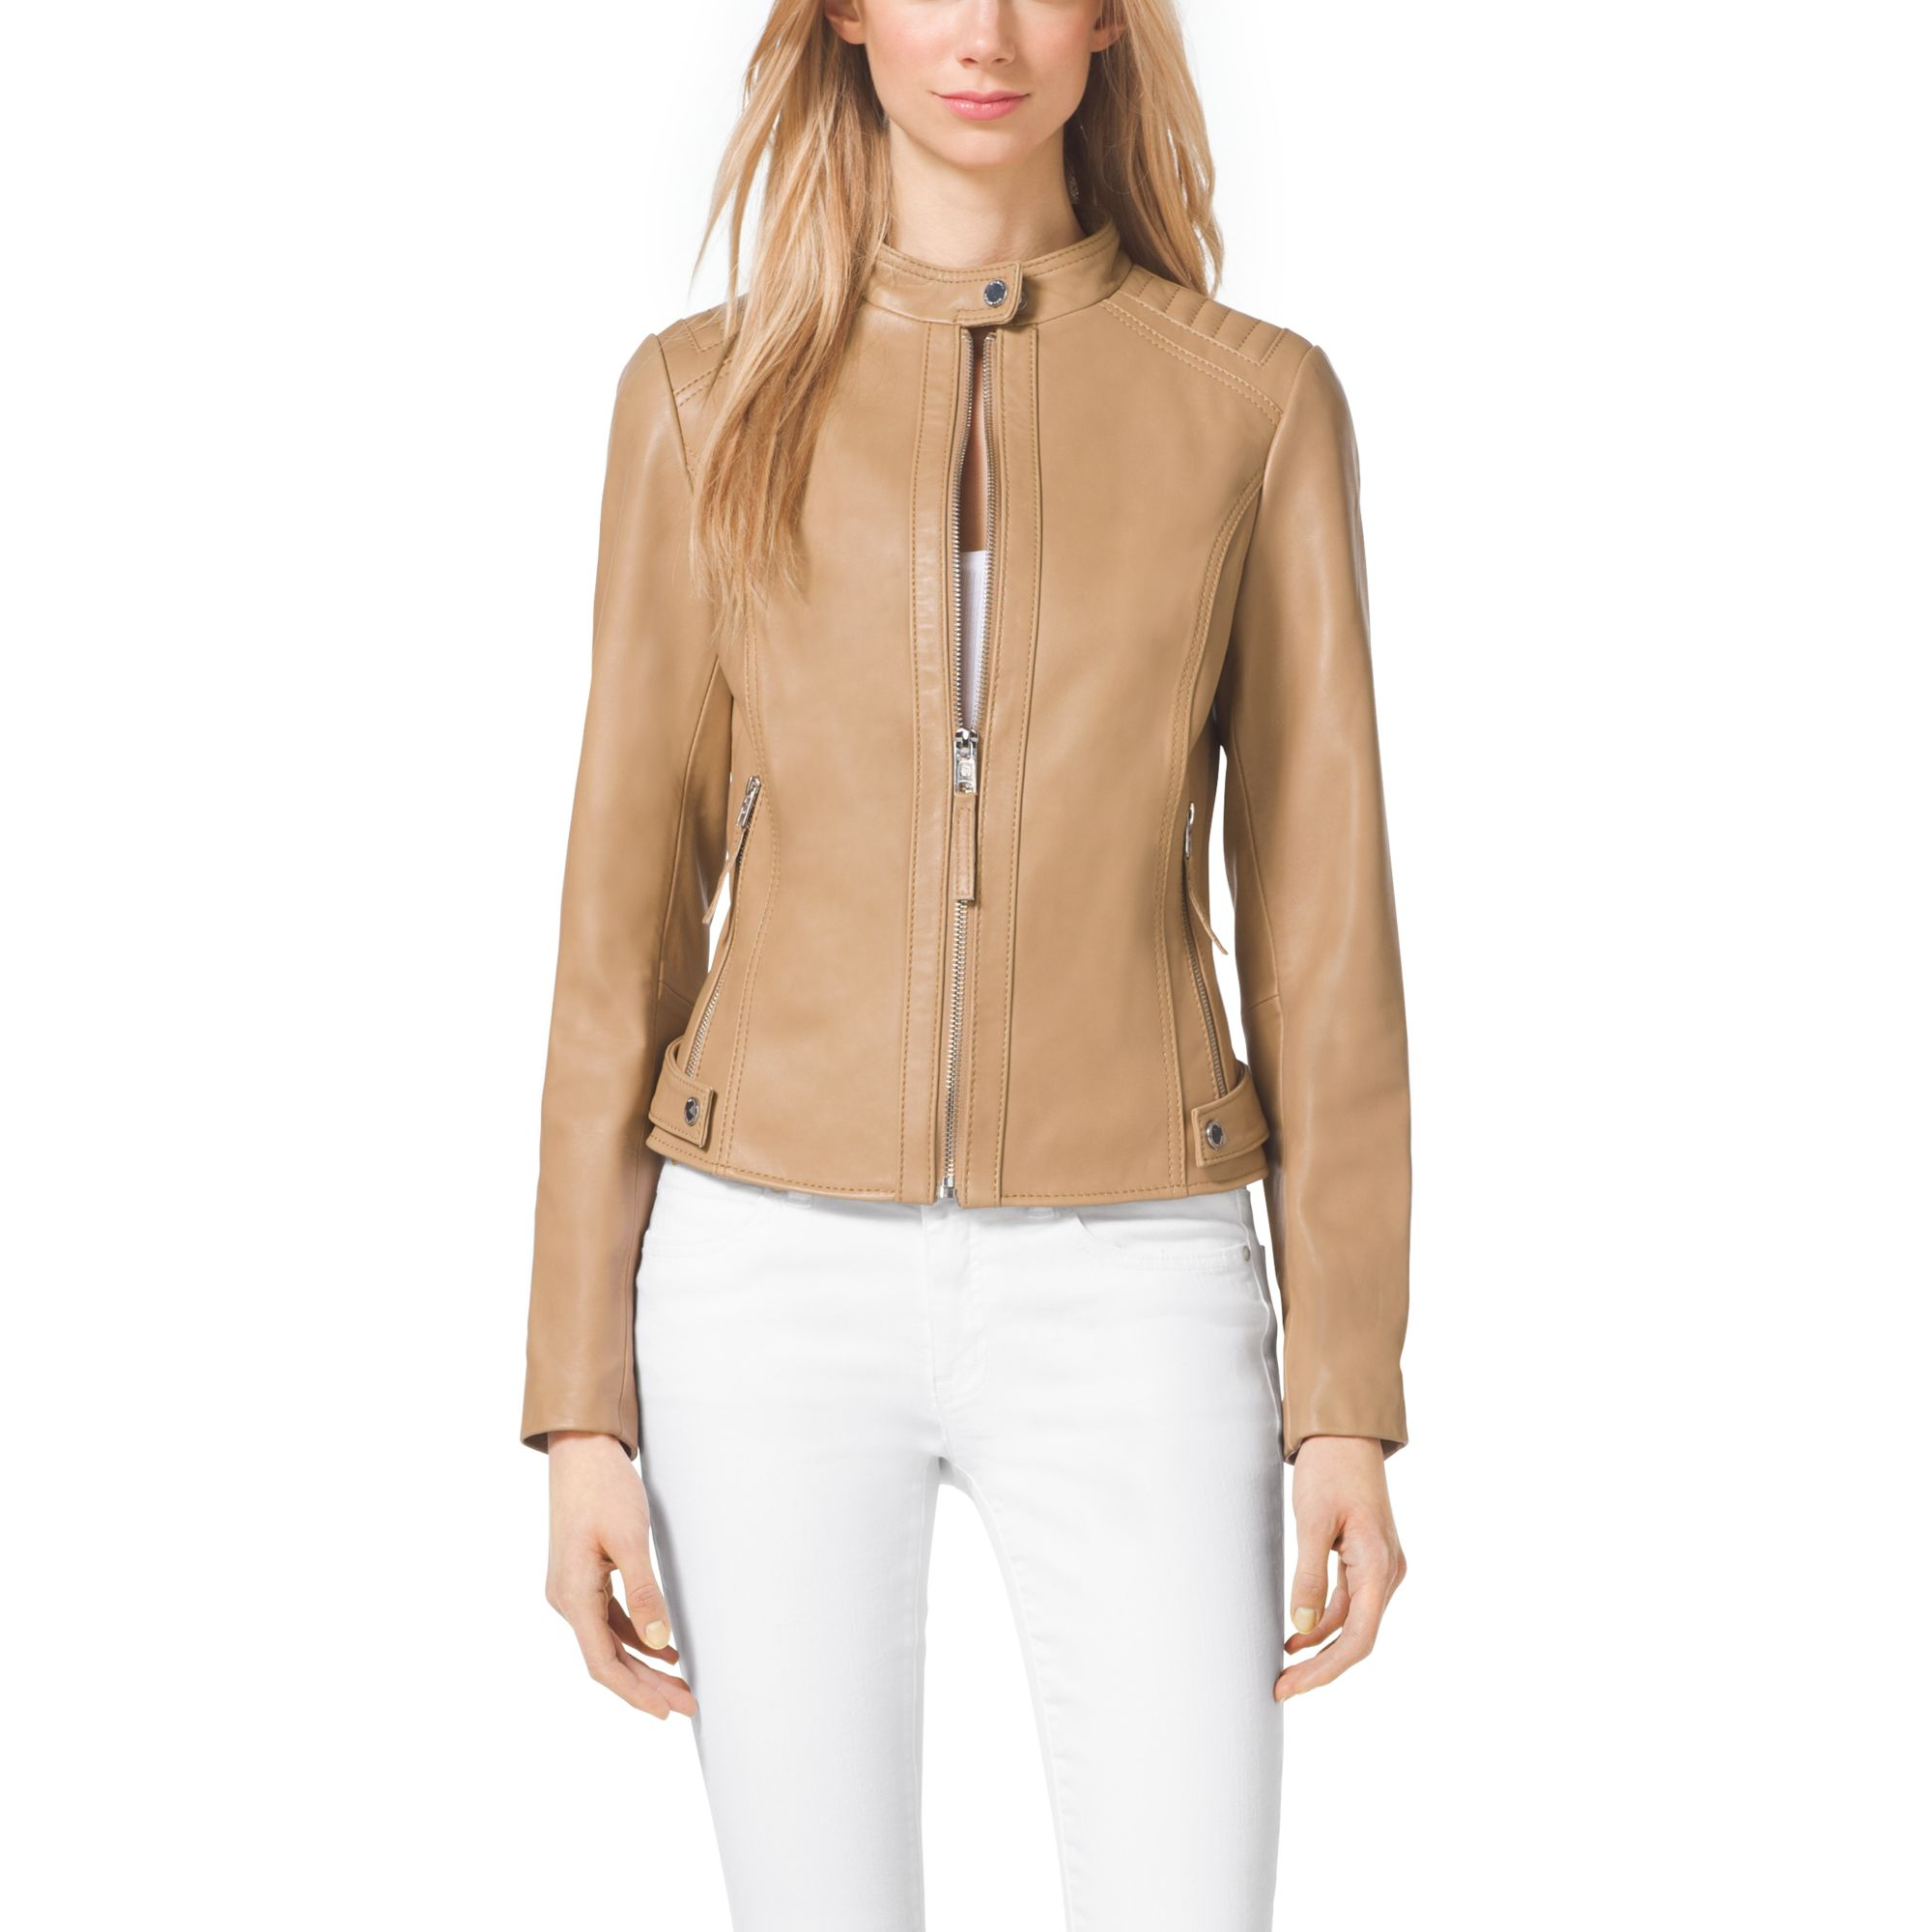 Michael kors womens leather jacket